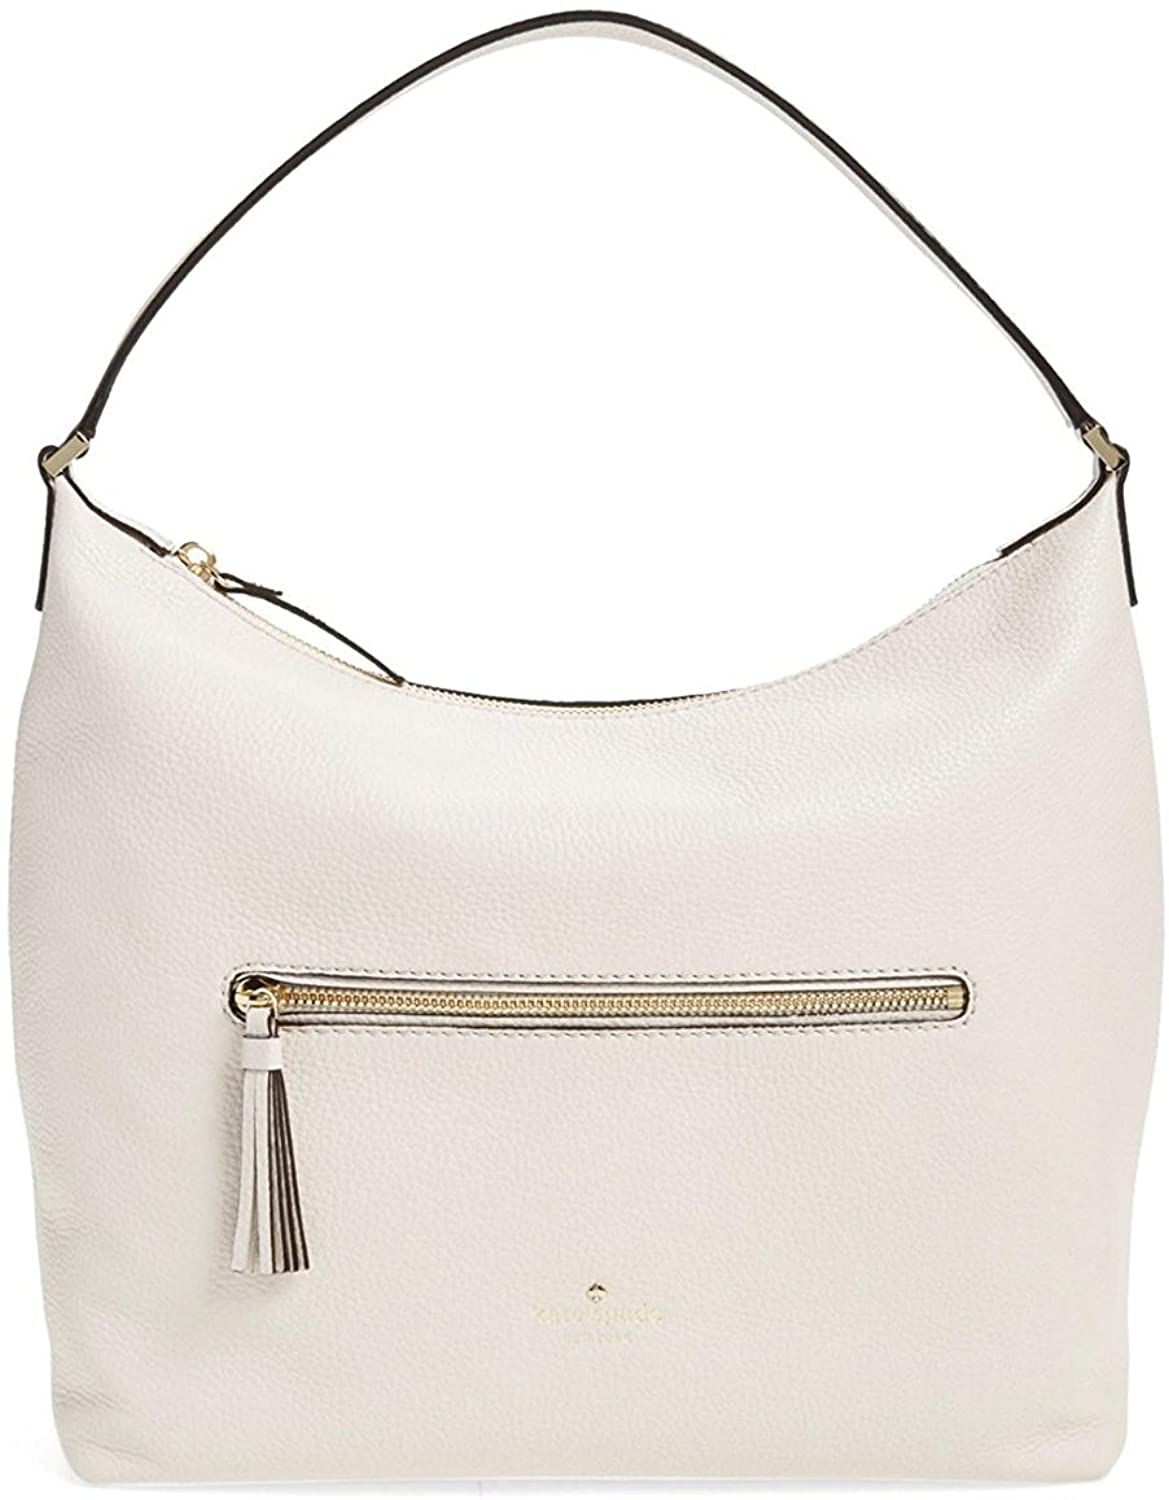 Kate Spade New York Caren Spencer Court Handbag